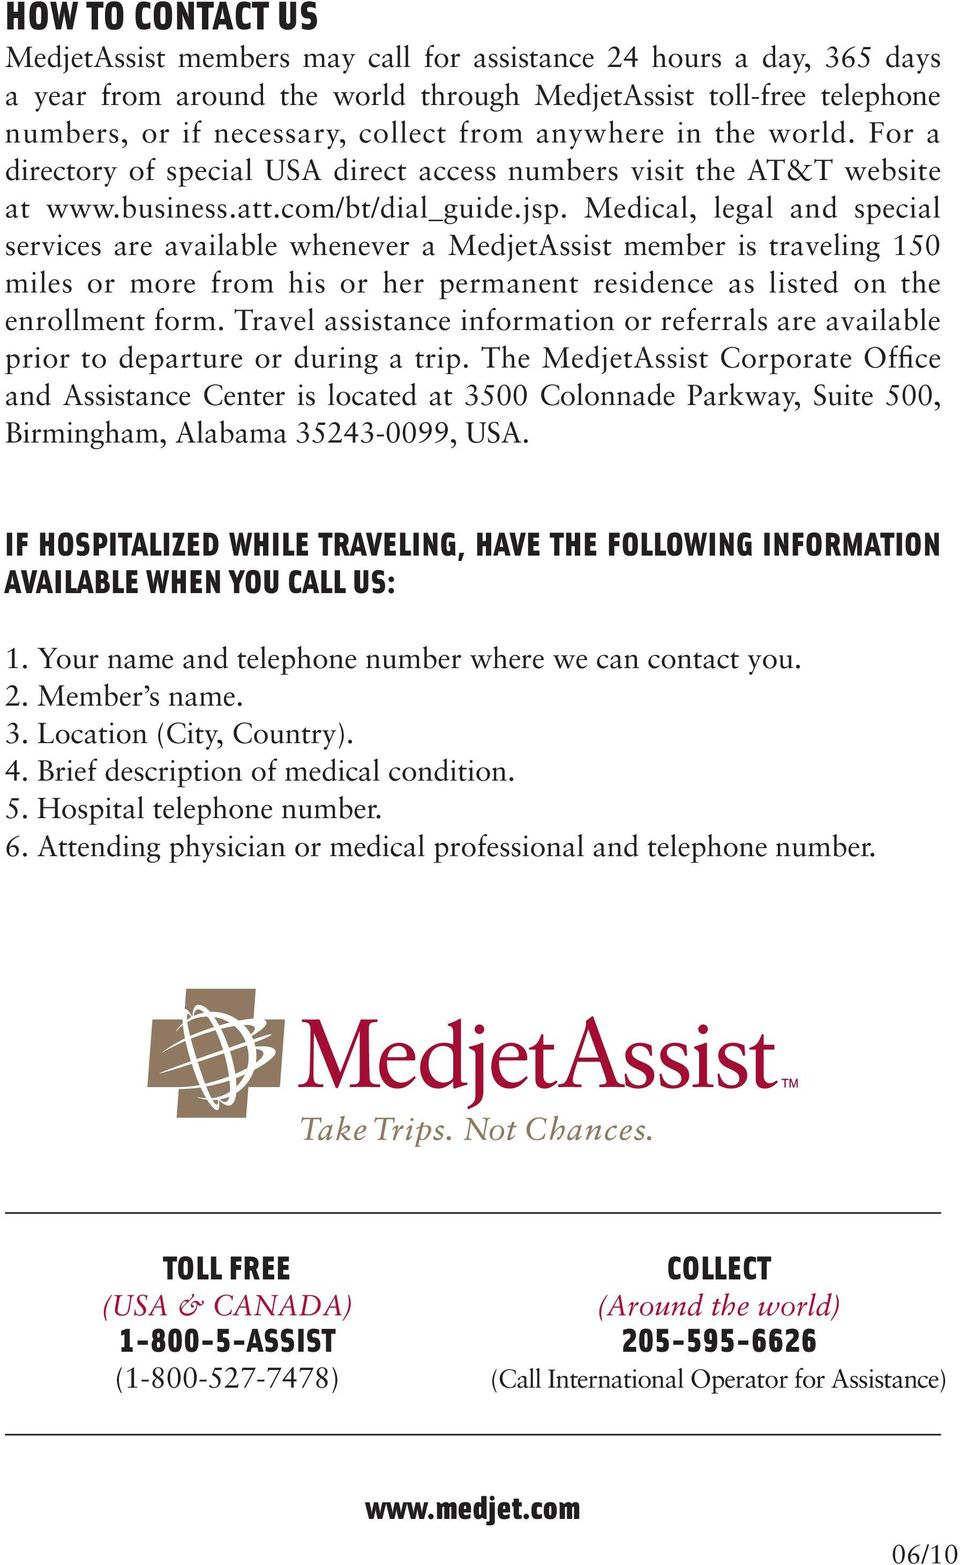 Medical, legal and special services are available whenever a MedjetAssist member is traveling 150 miles or more from his or her permanent residence as listed on the enrollment form.